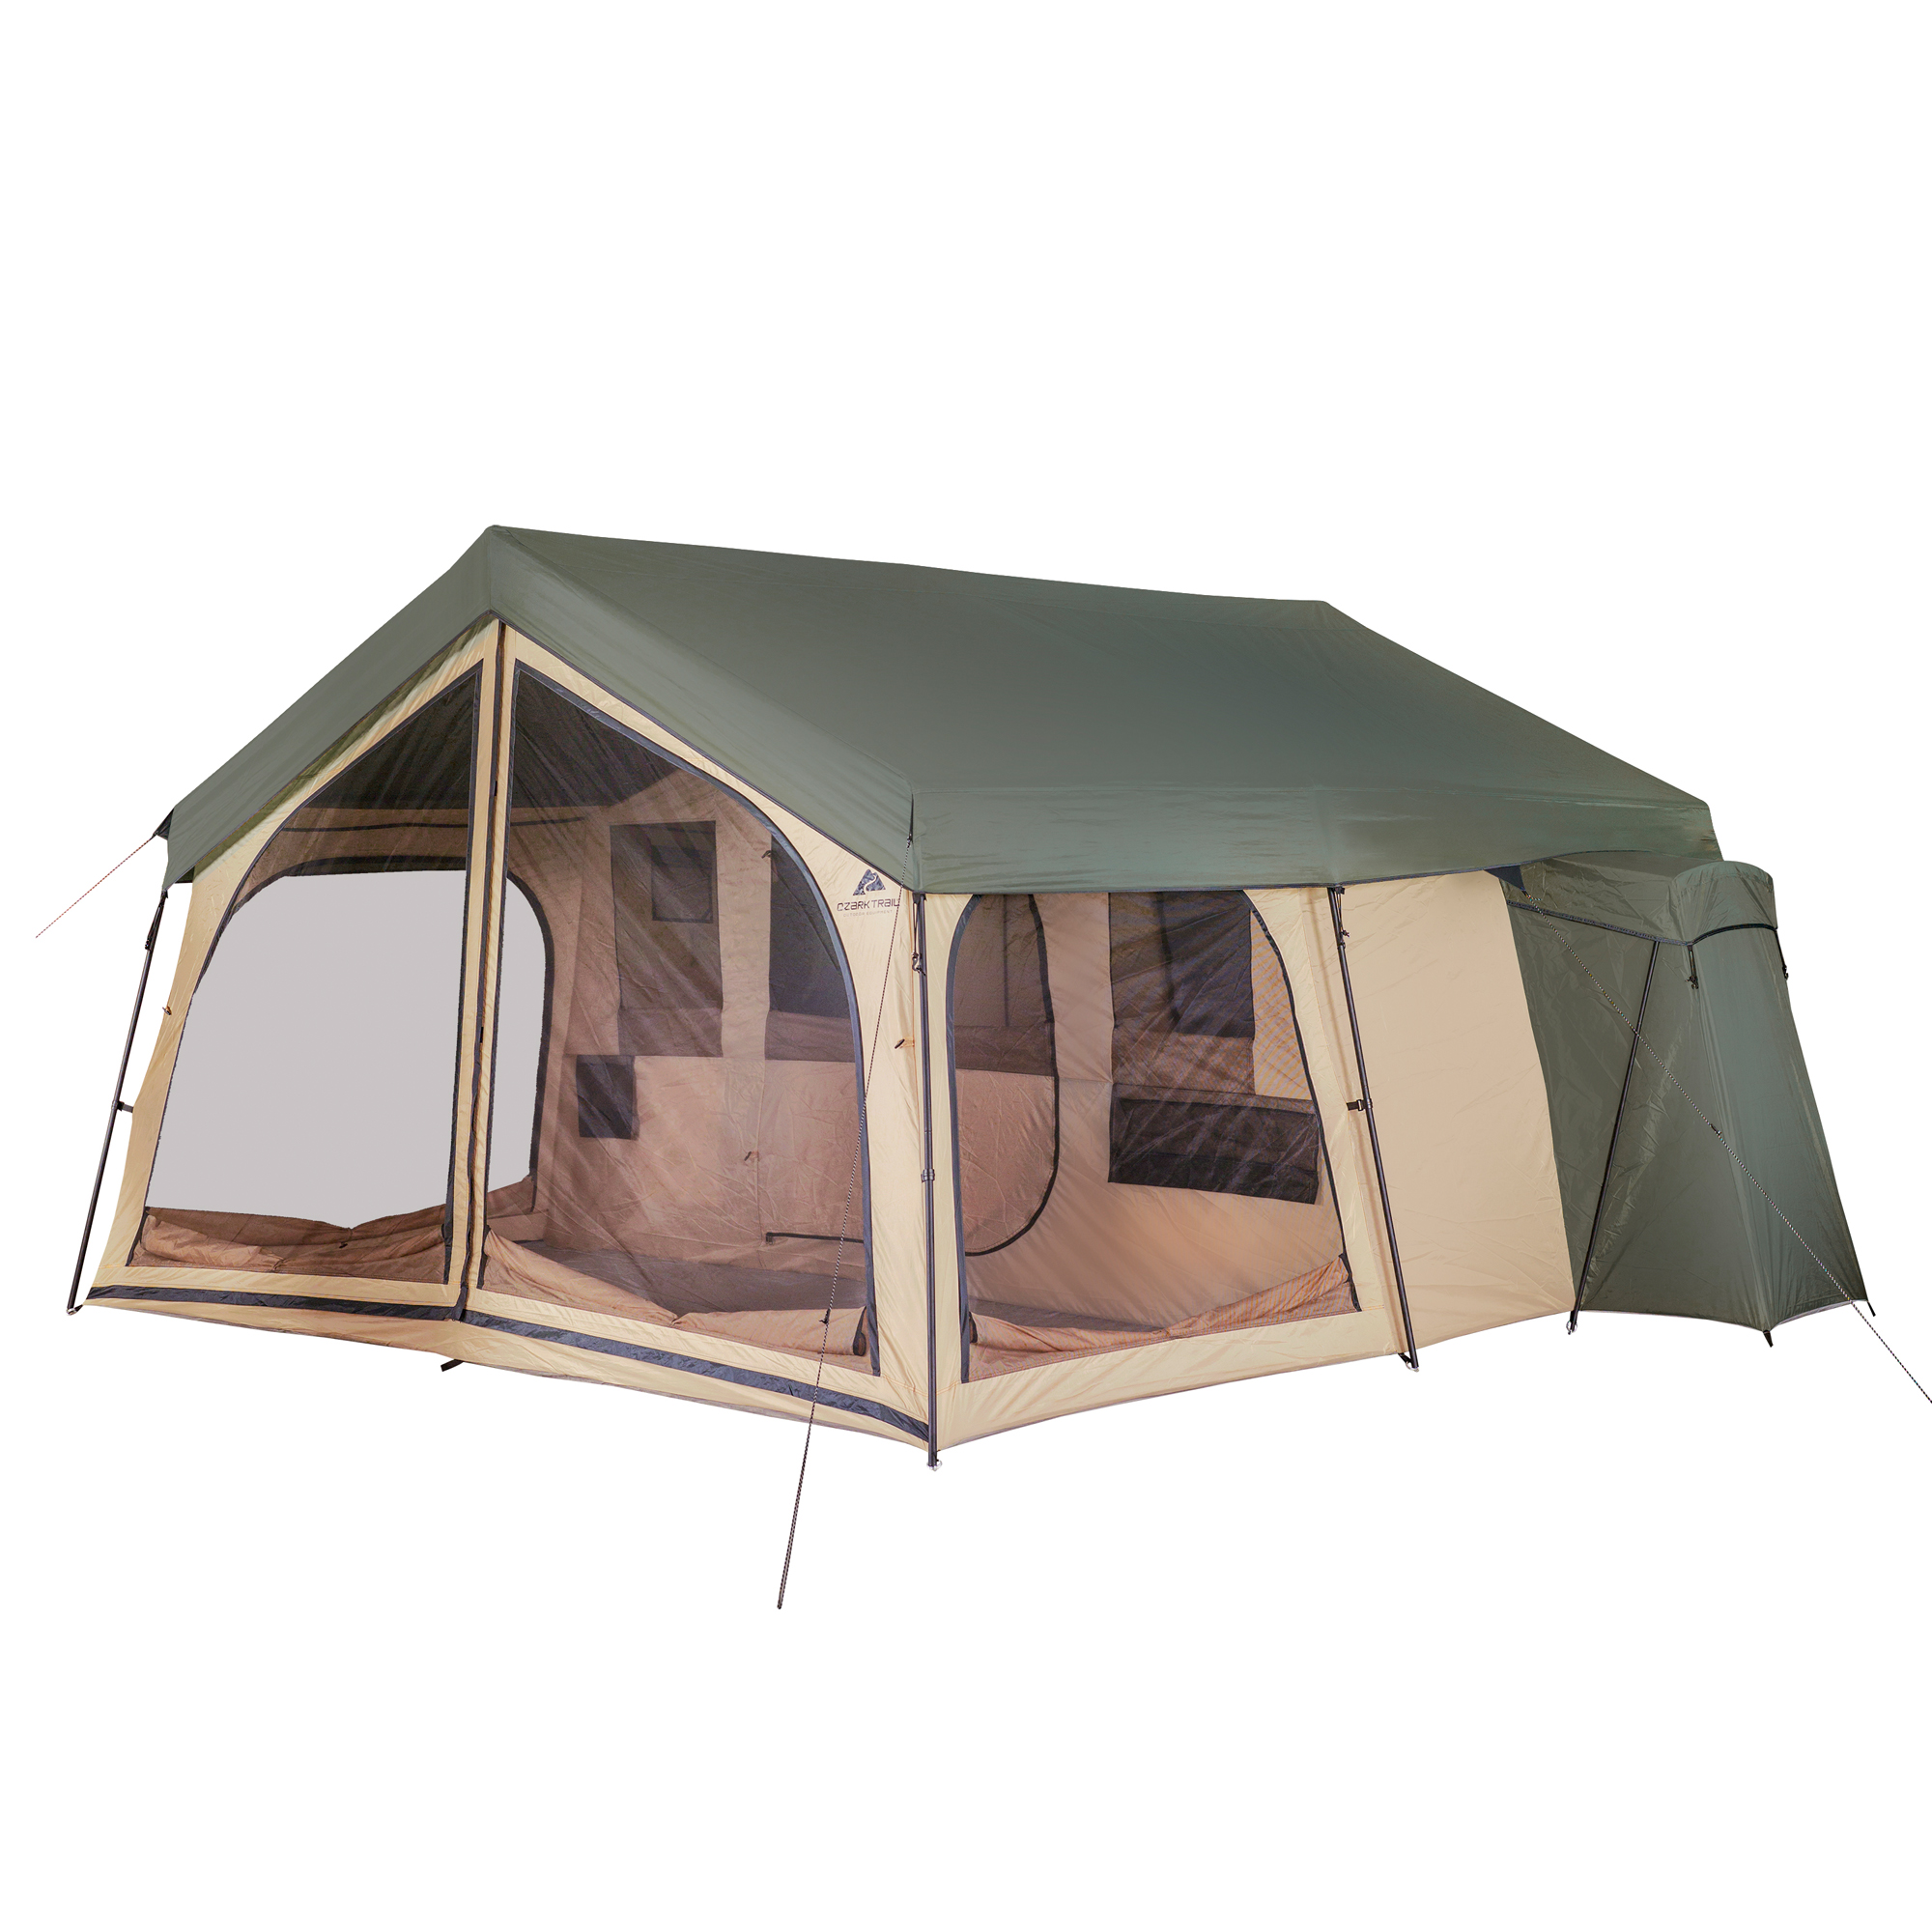 Ozark Trail 14 Person Spring Lodge Cabin Camping Tent by HKD GLOBAL LIMITED